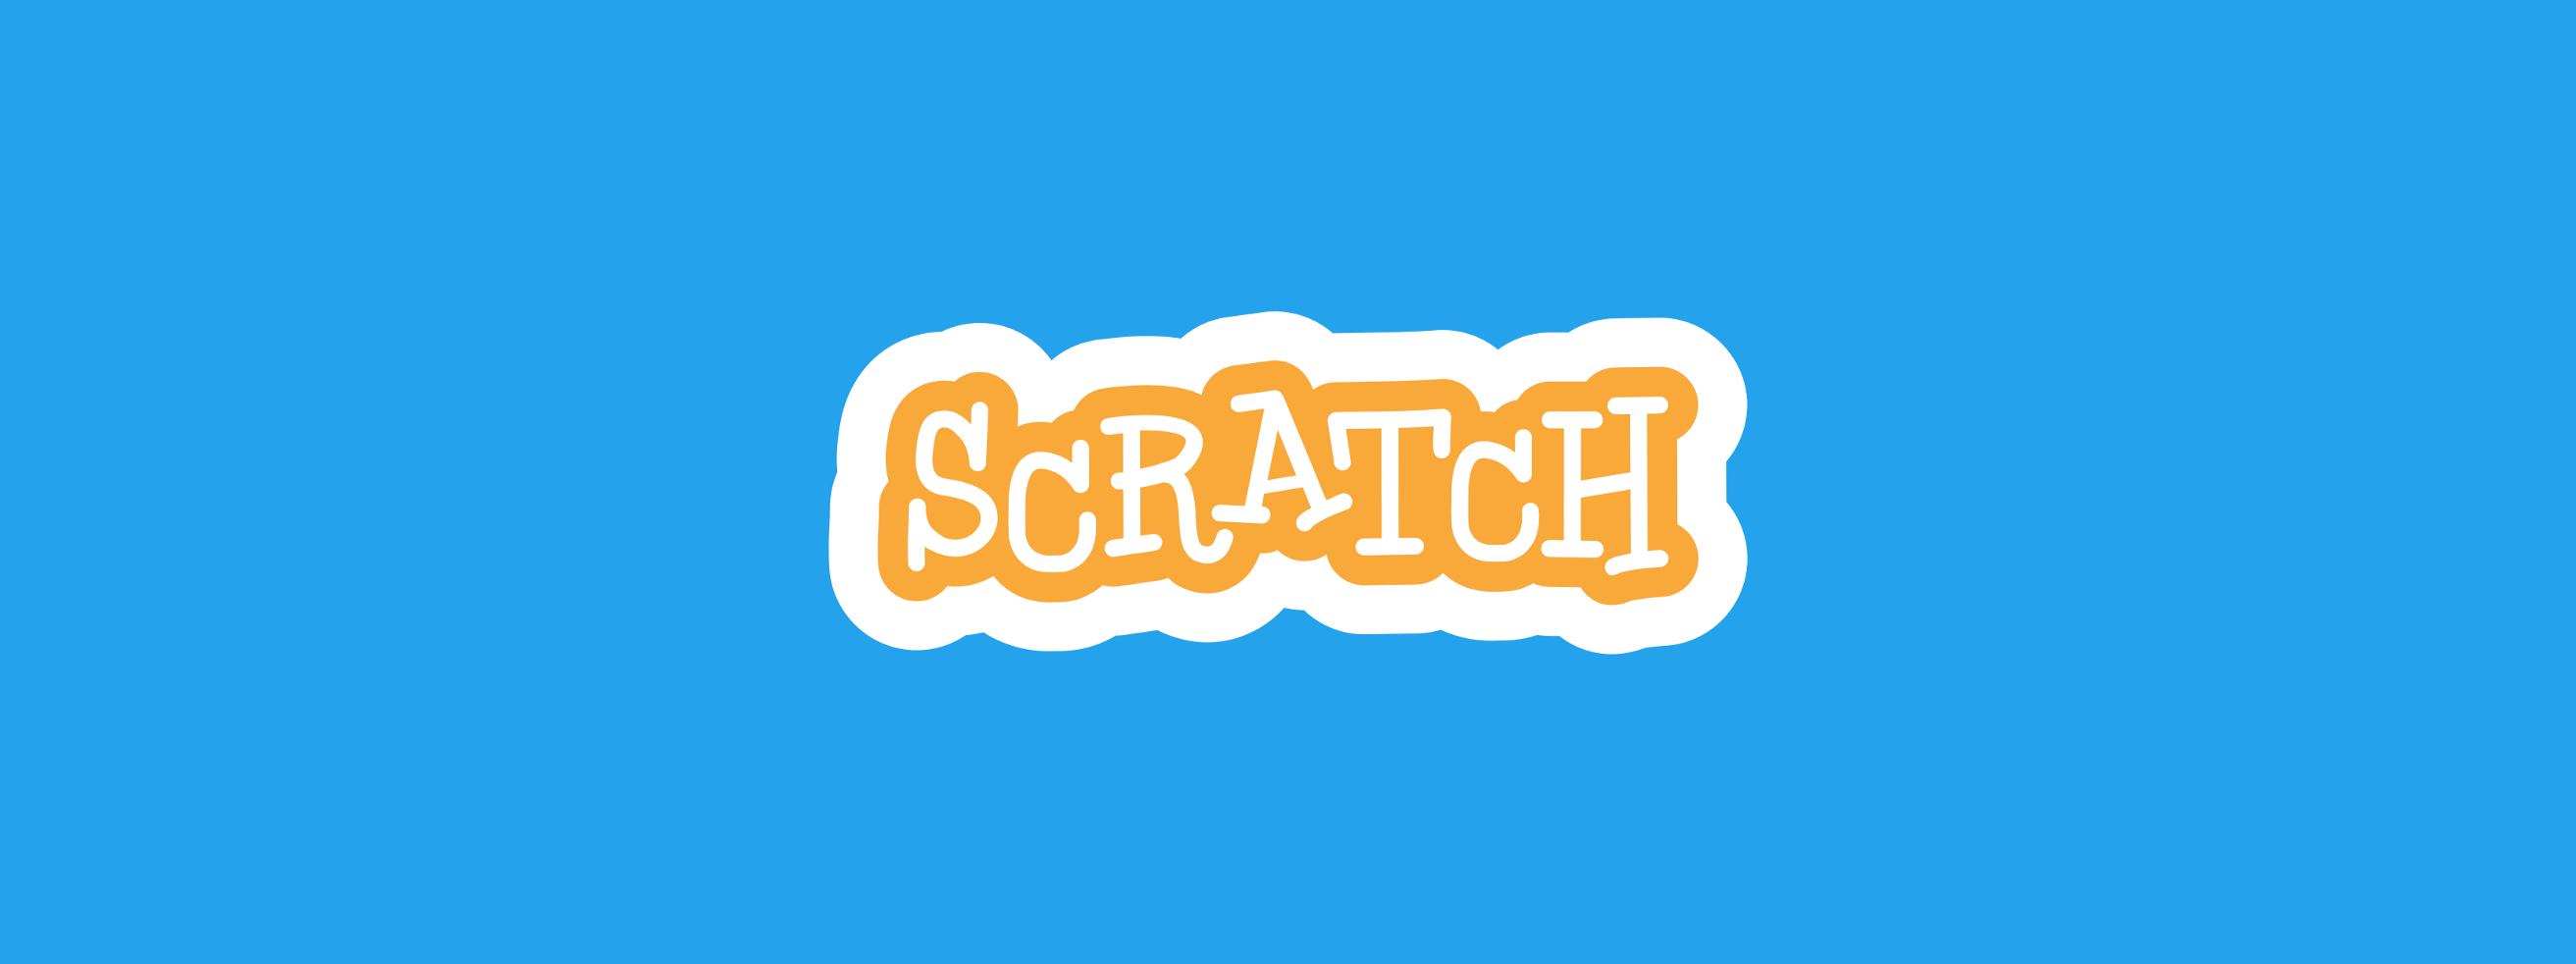 Image result for creative commons image of junior scratch